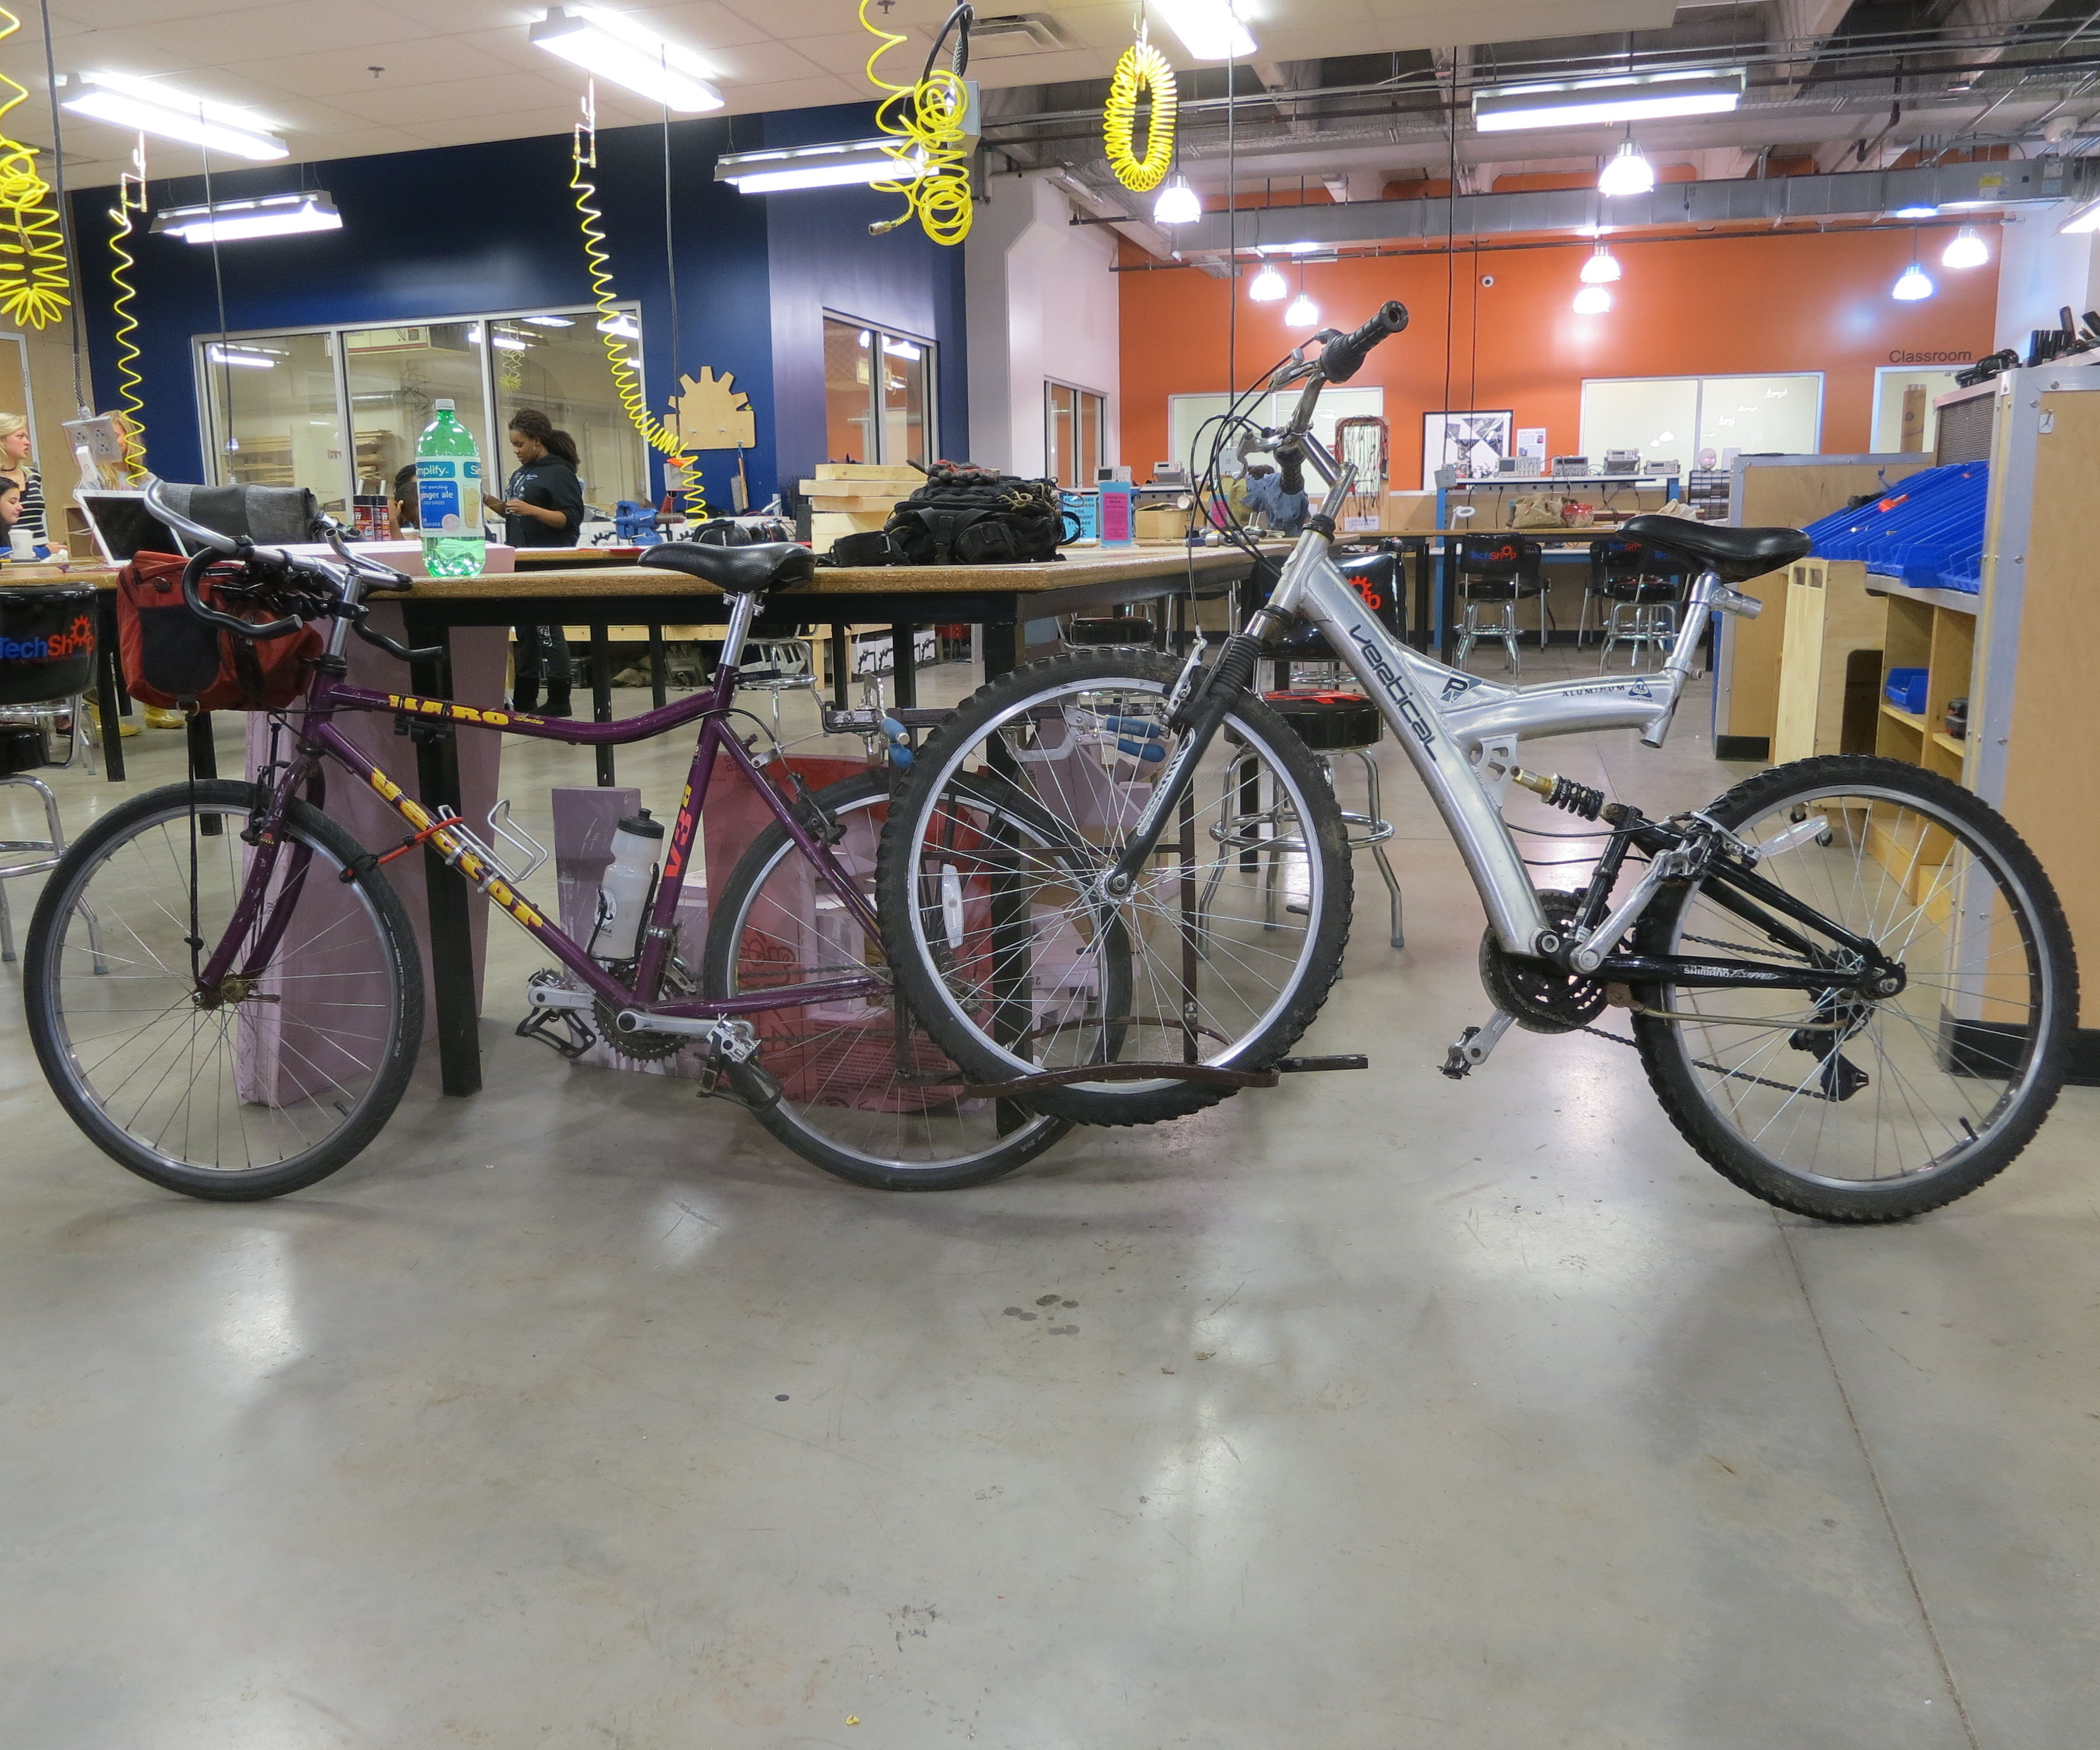 Bicycle Tow Rack - I Made It at TechShop!